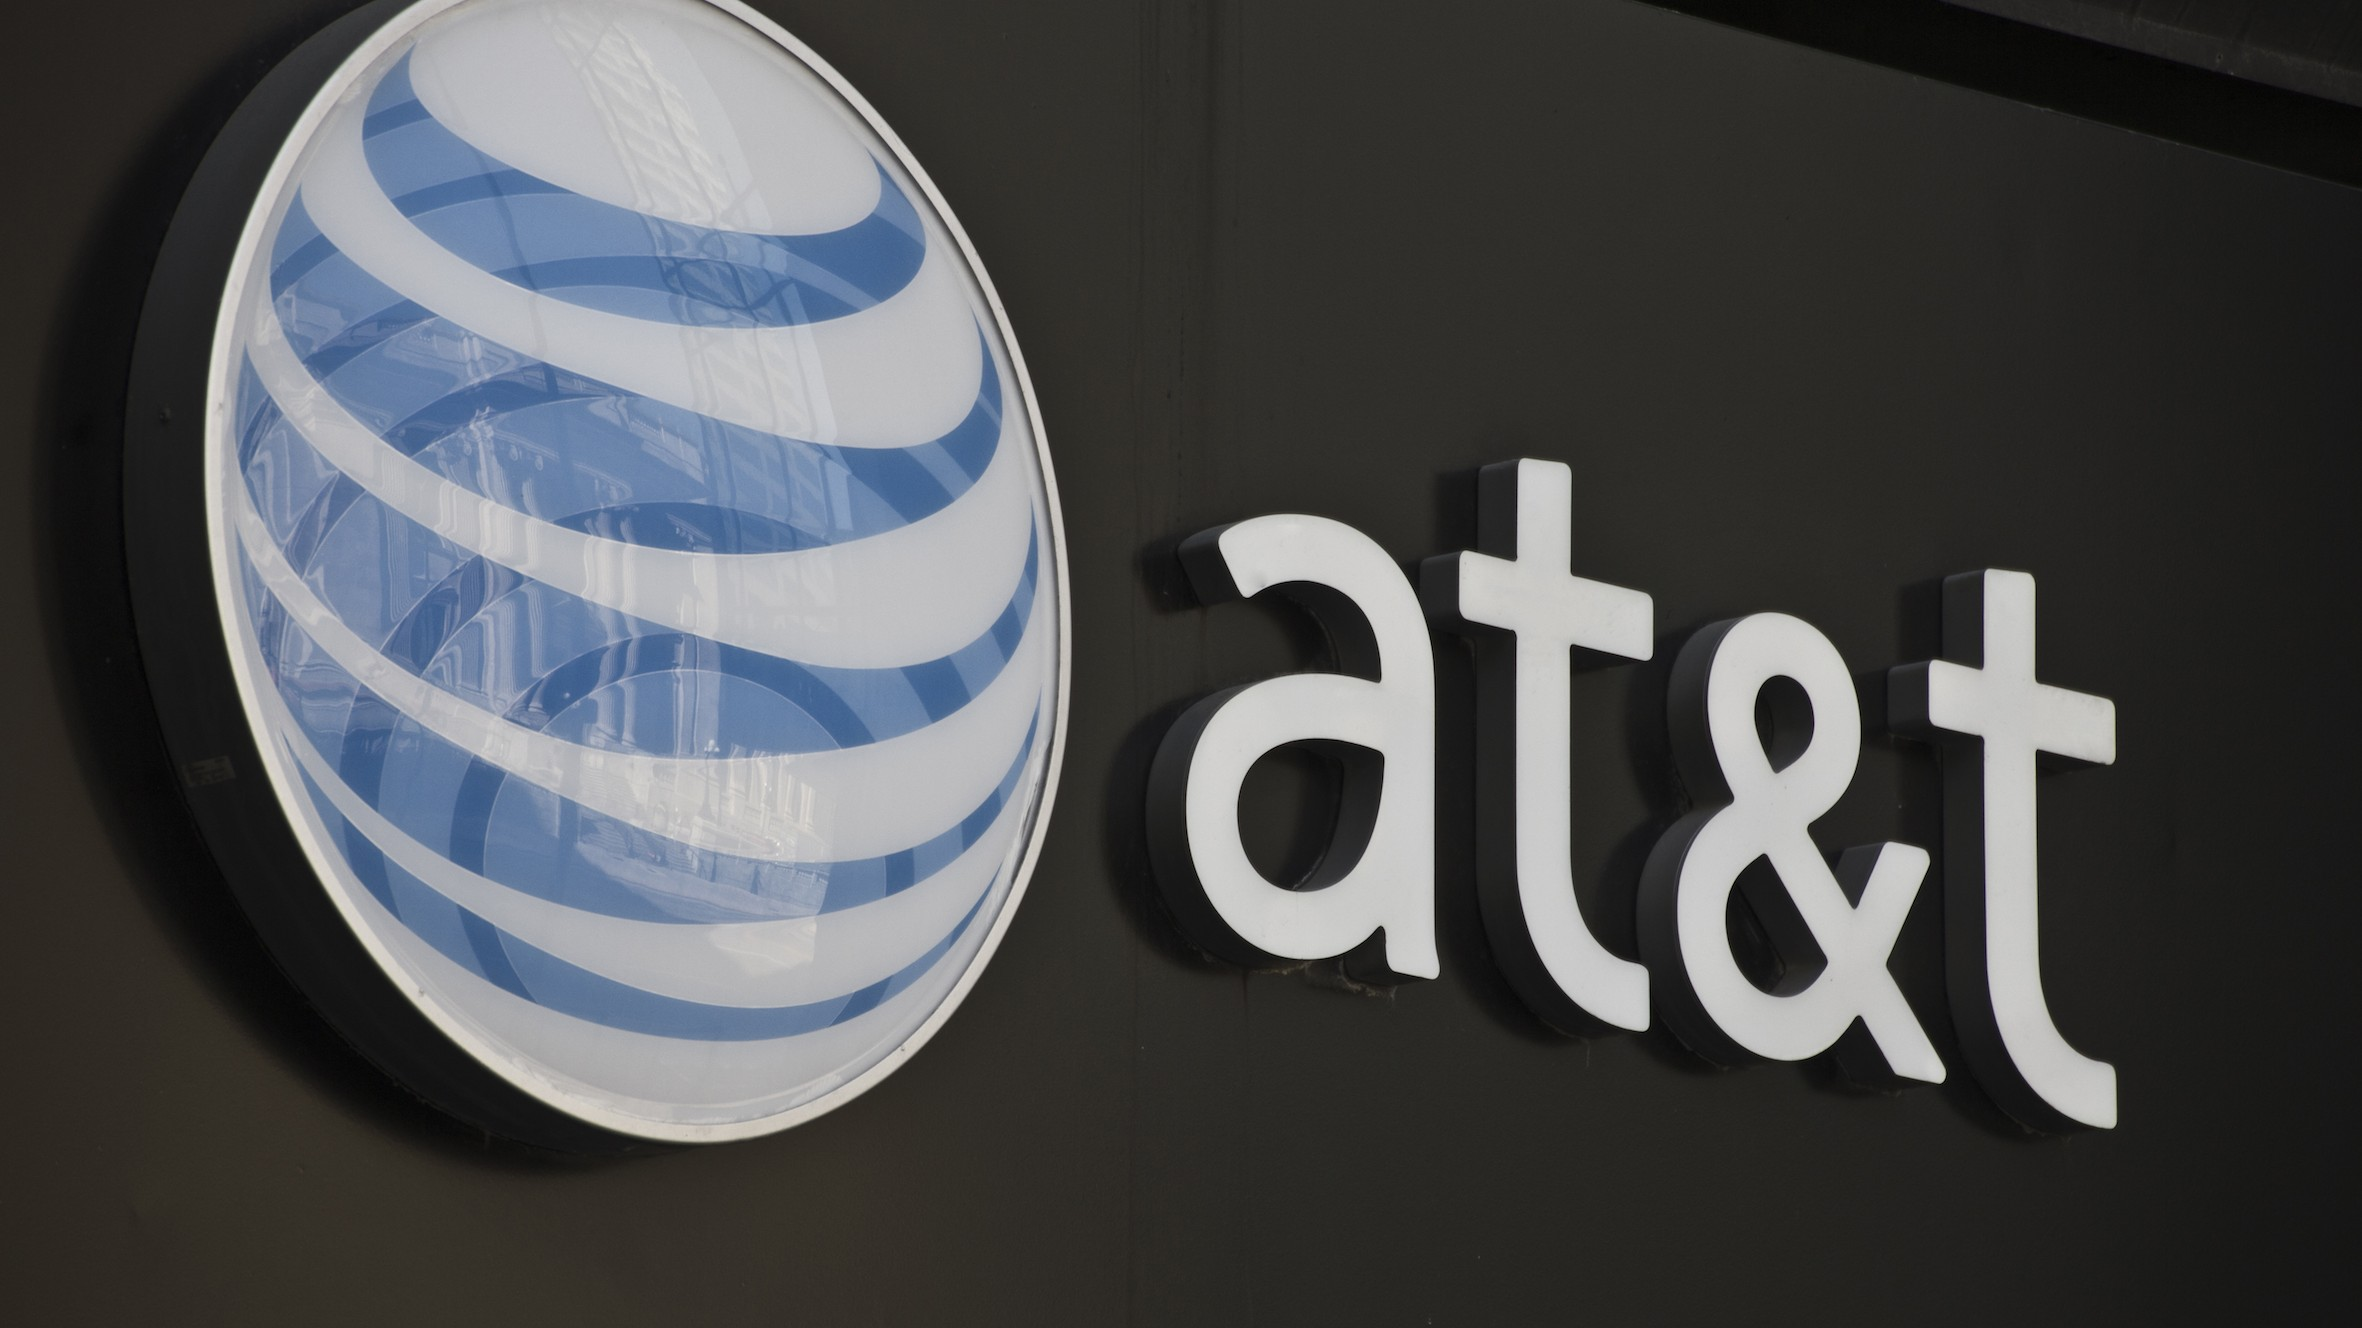 AT&T to Stop Selling Location Data to Third Parties After Motherboard Investigation